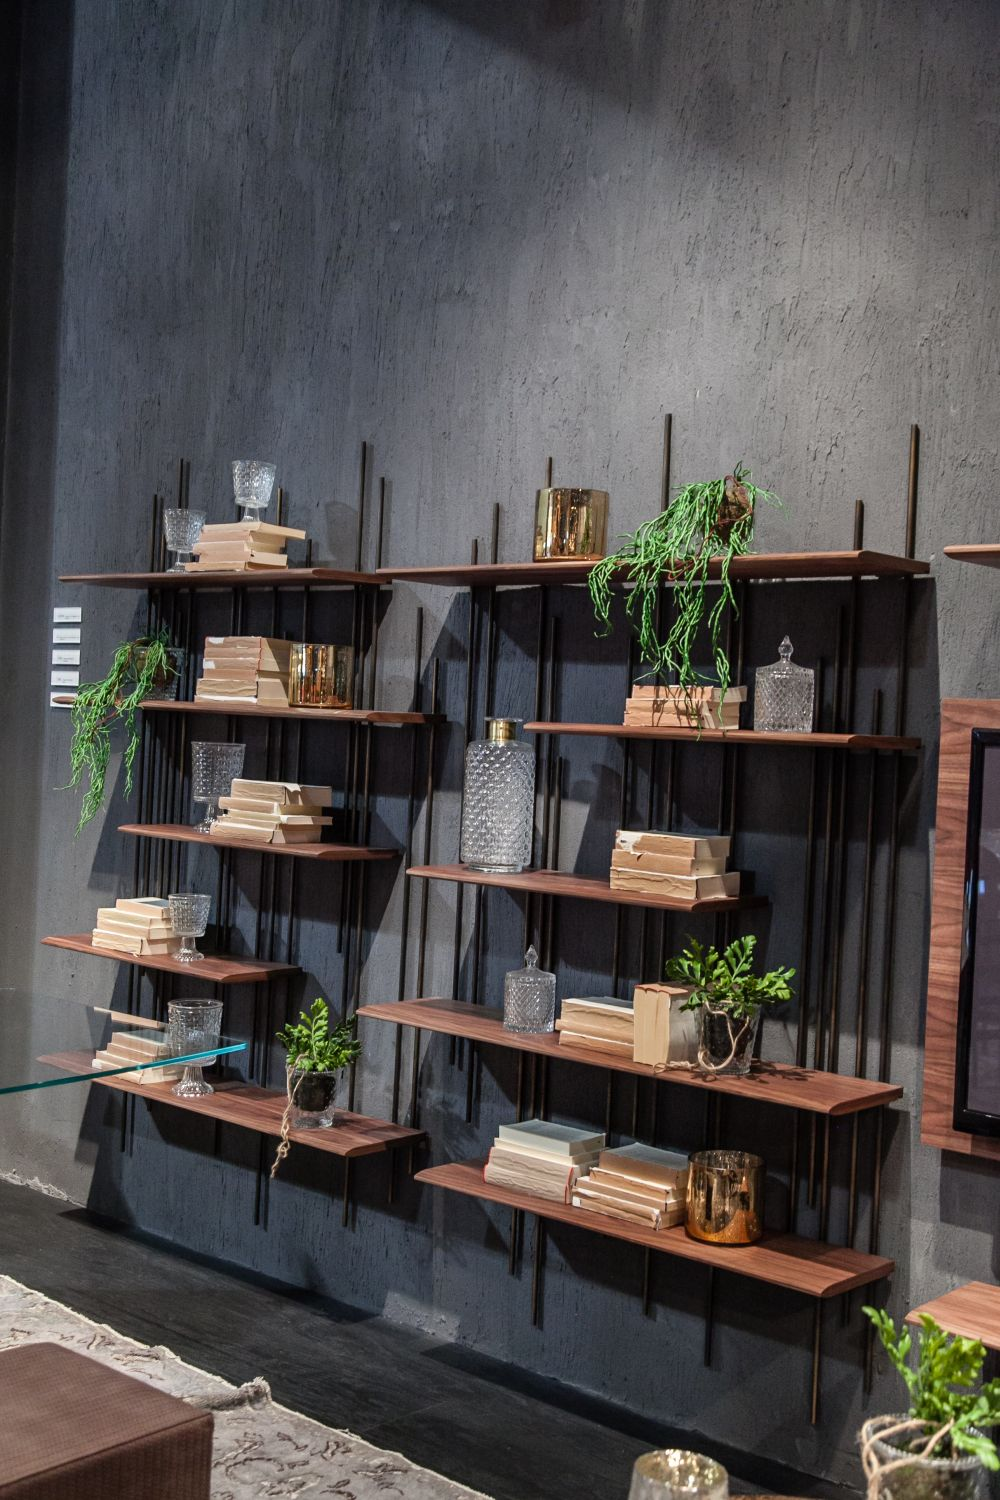 There are lots of different types of shelves to choose from. Base your decision on the style that you prefer